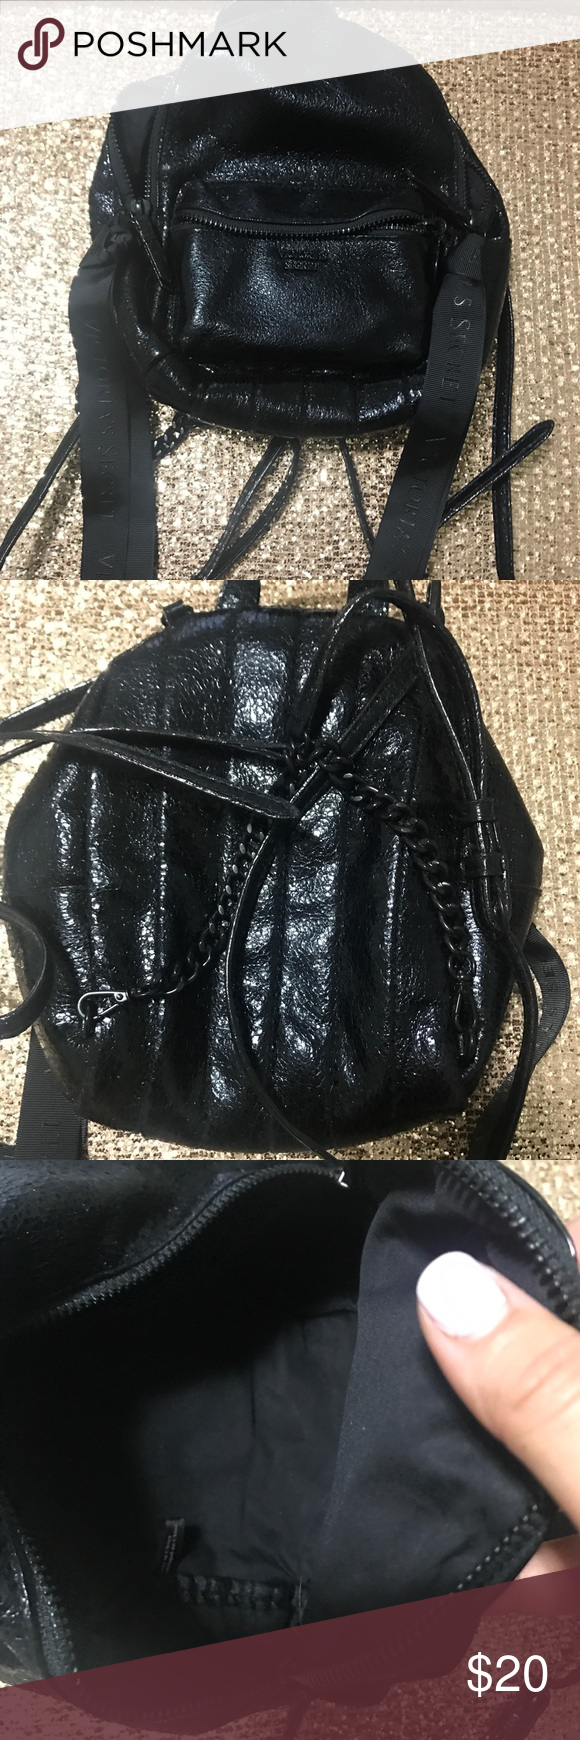 3d834efc4da VS metallic crackle city mini Backpack Metallic black leather Victoria  Secret Backpack. Small in size but fits a lot! Straps are super cute with a  black ...